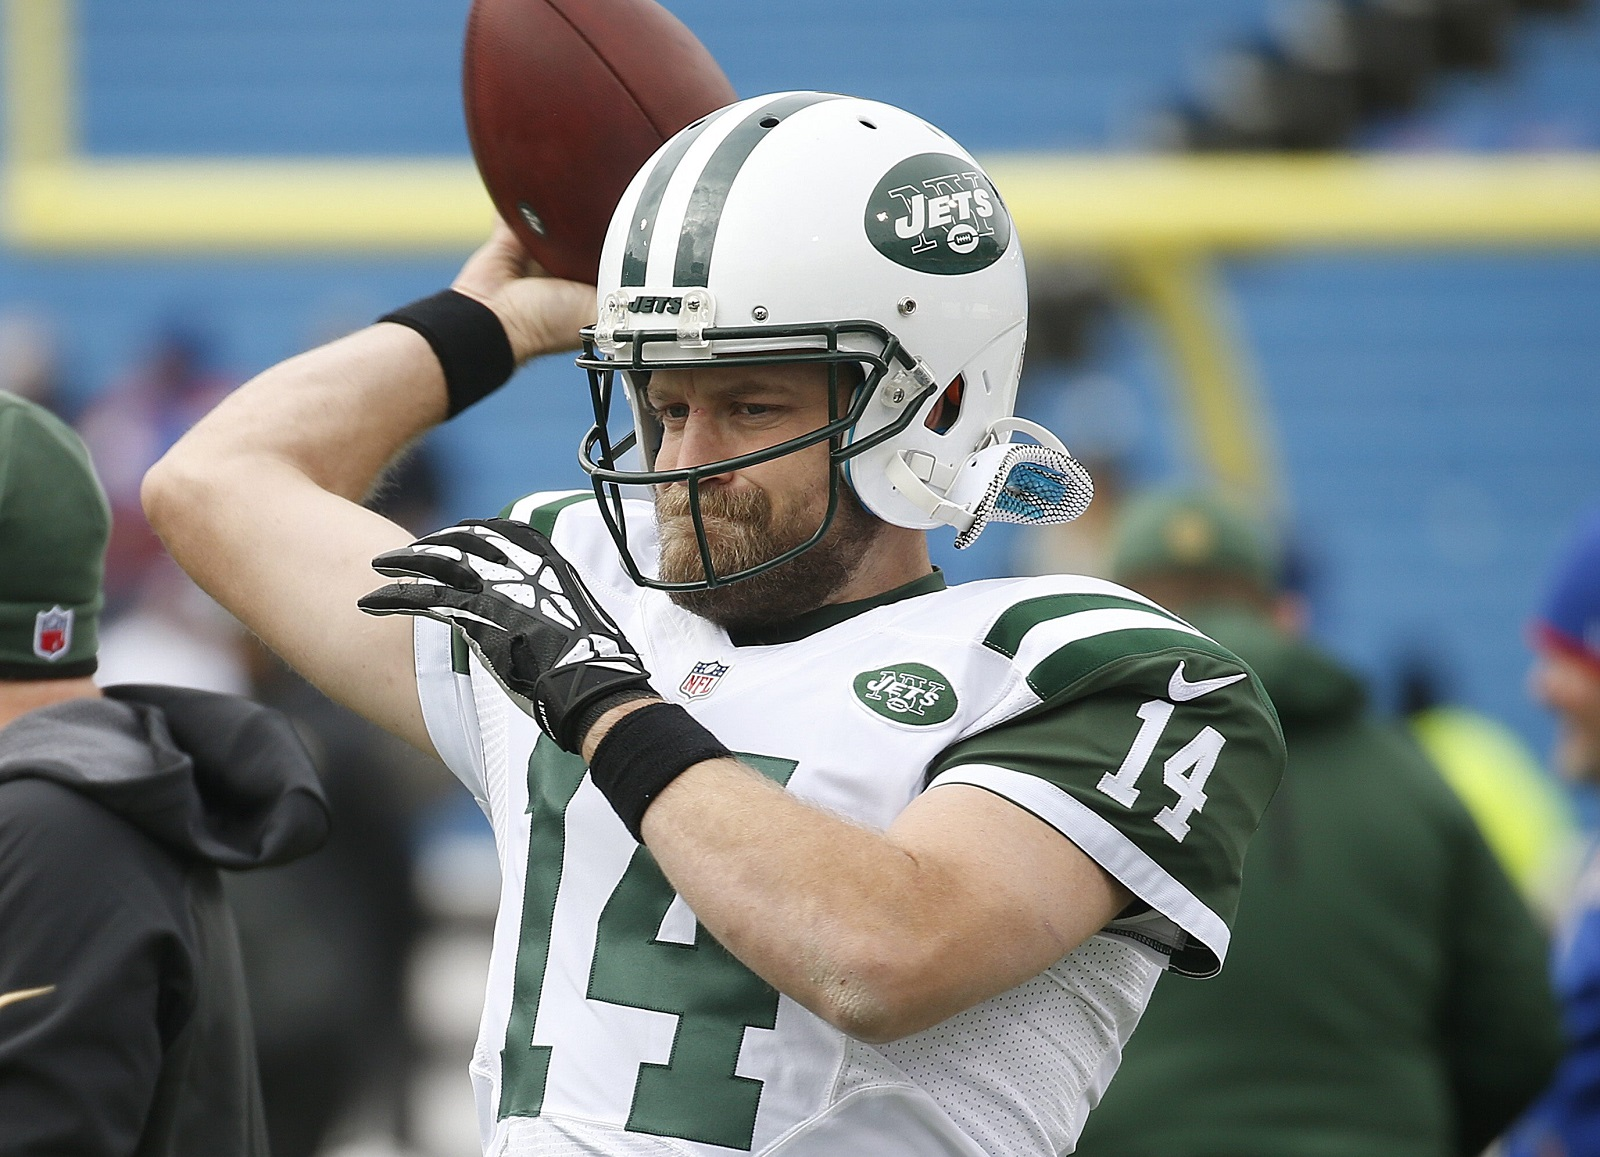 Bills fall to Jets in season finale, end season 7-9